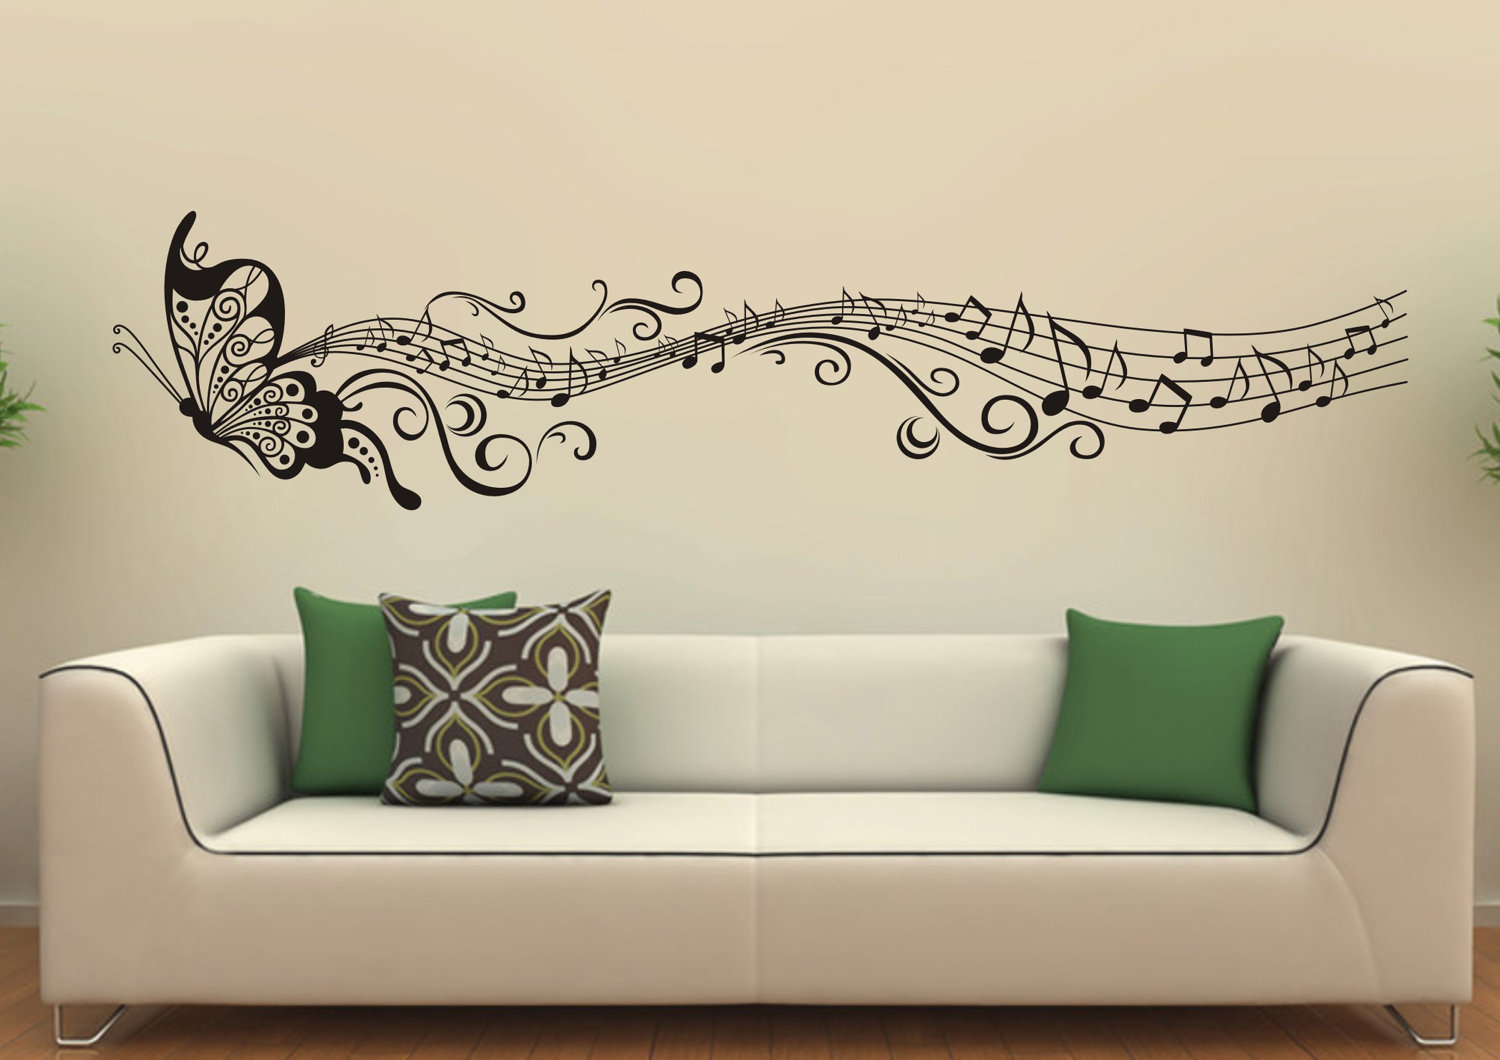 Awesome Wall Decor 30 Unique Wall Decor Ideas Godfather Style